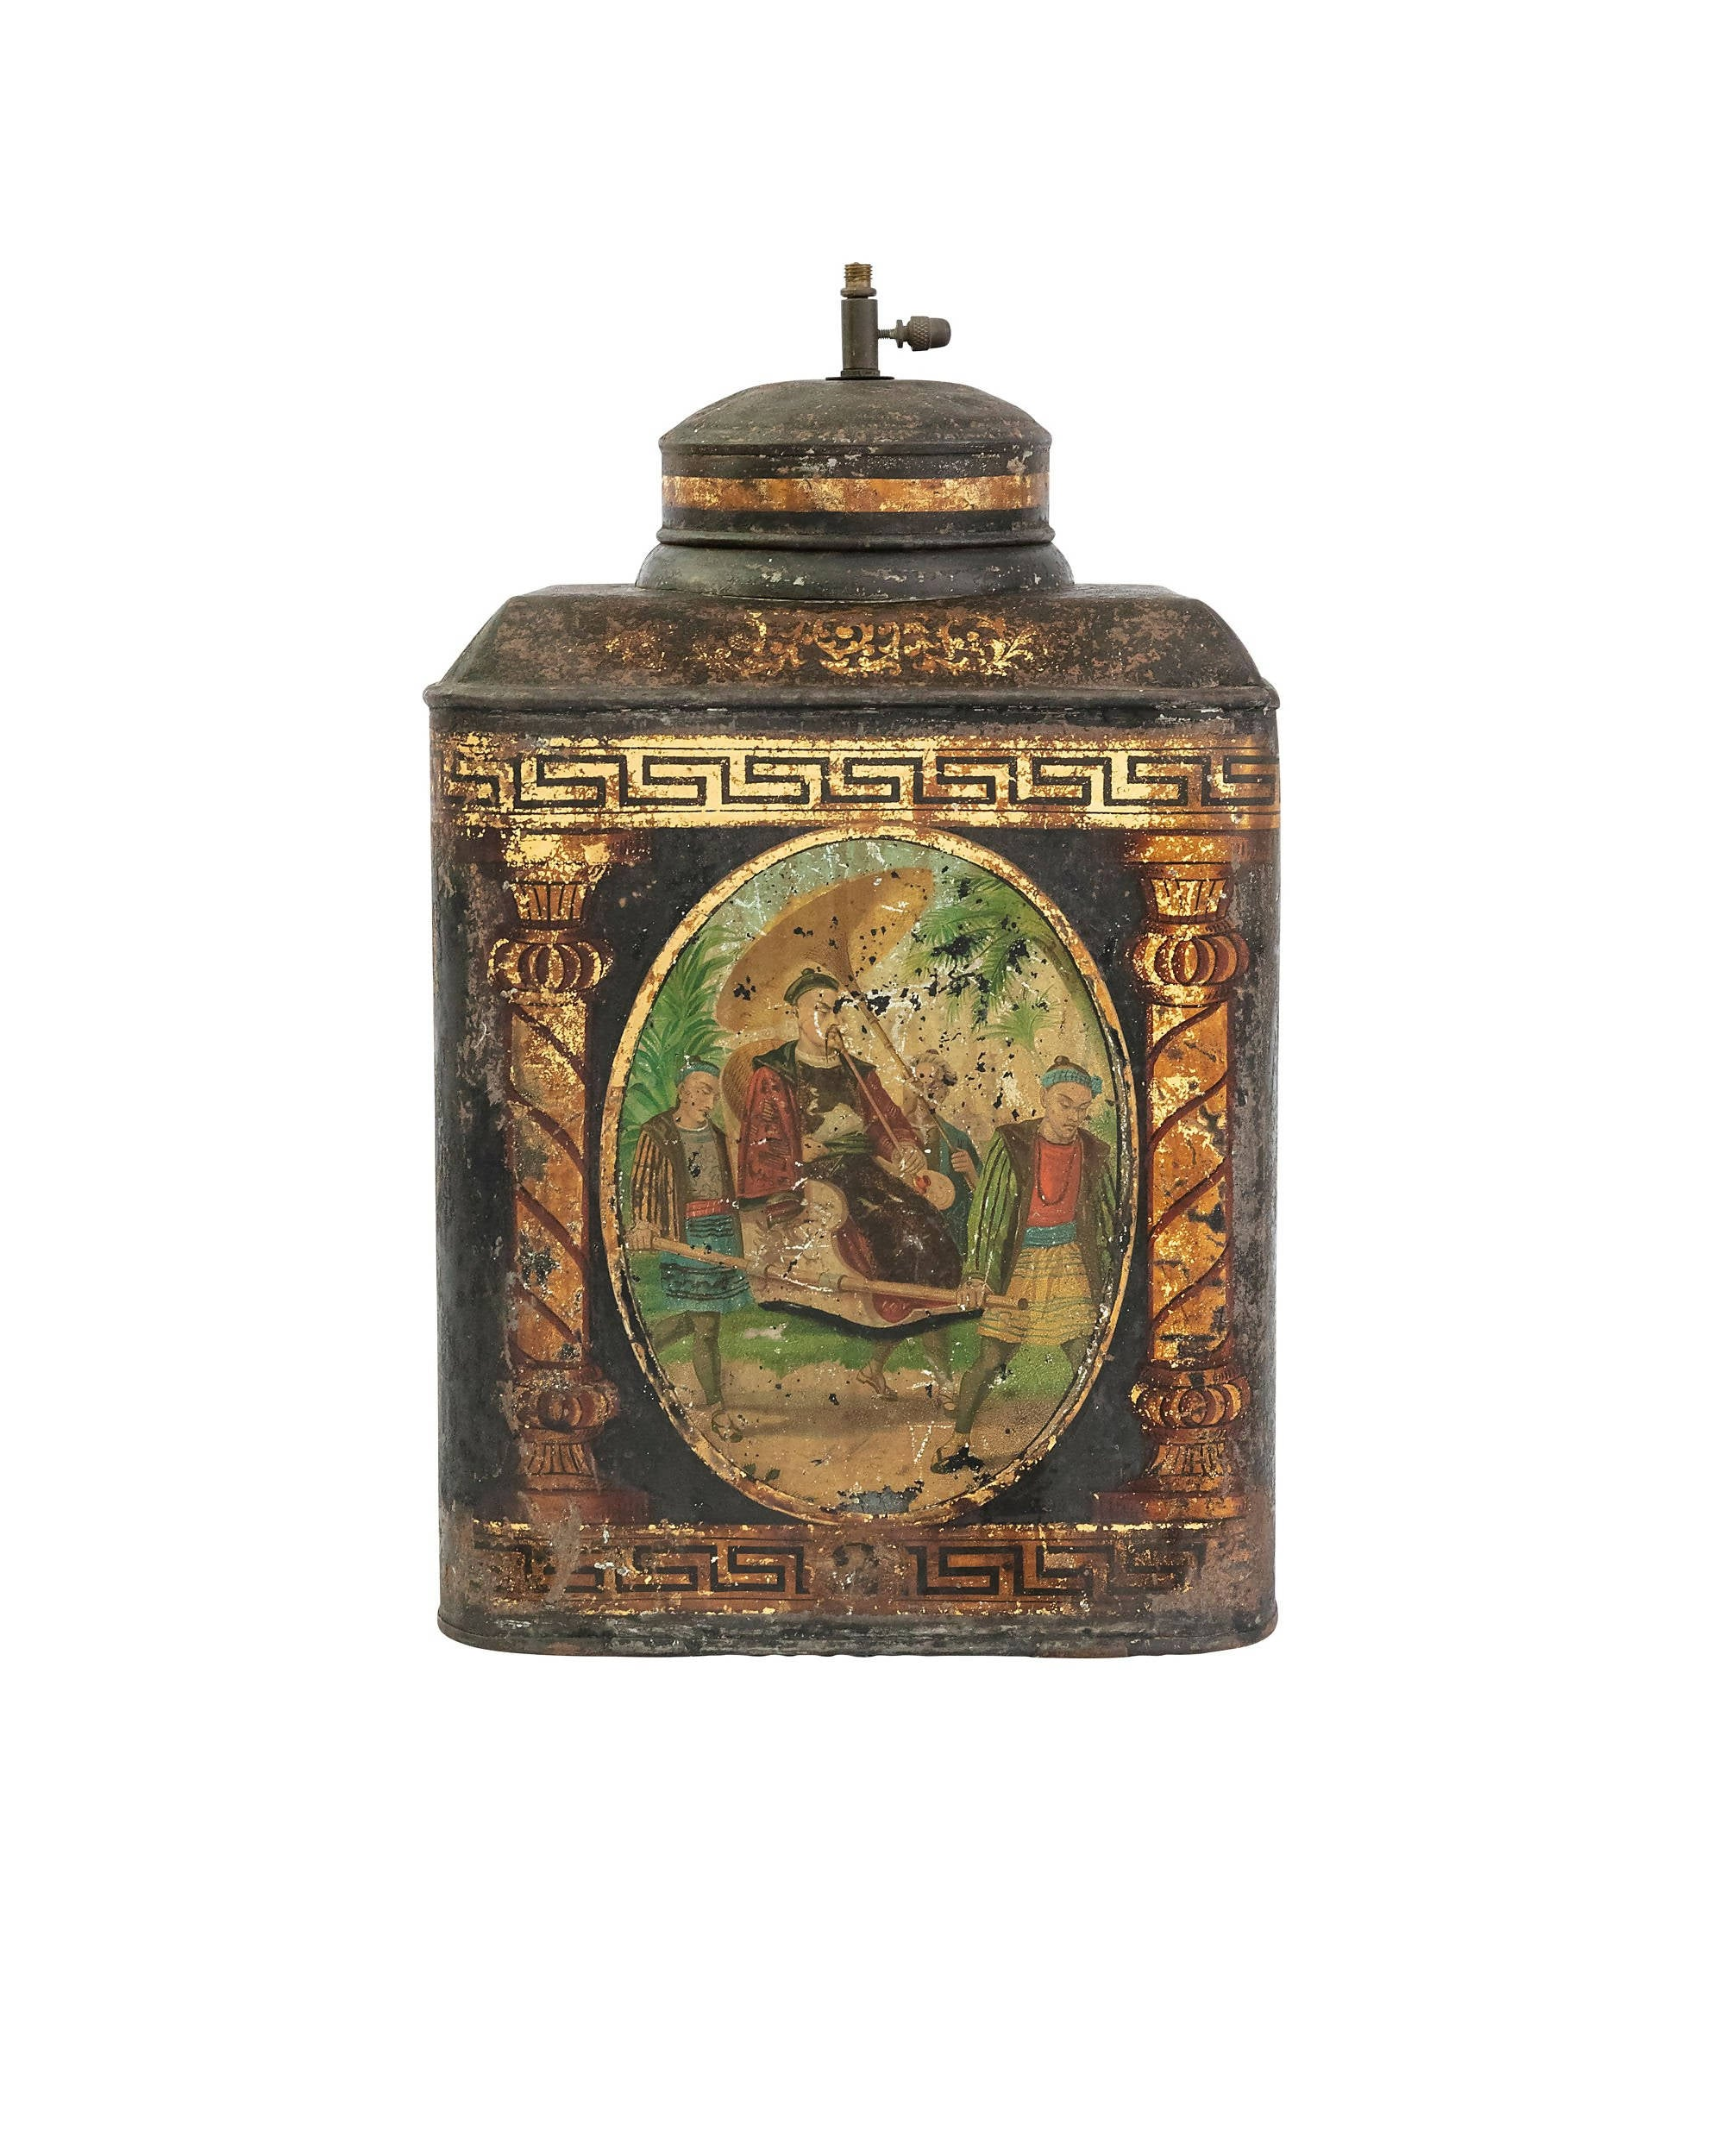 Hand-painted tea tin with Chinese-styled motifs